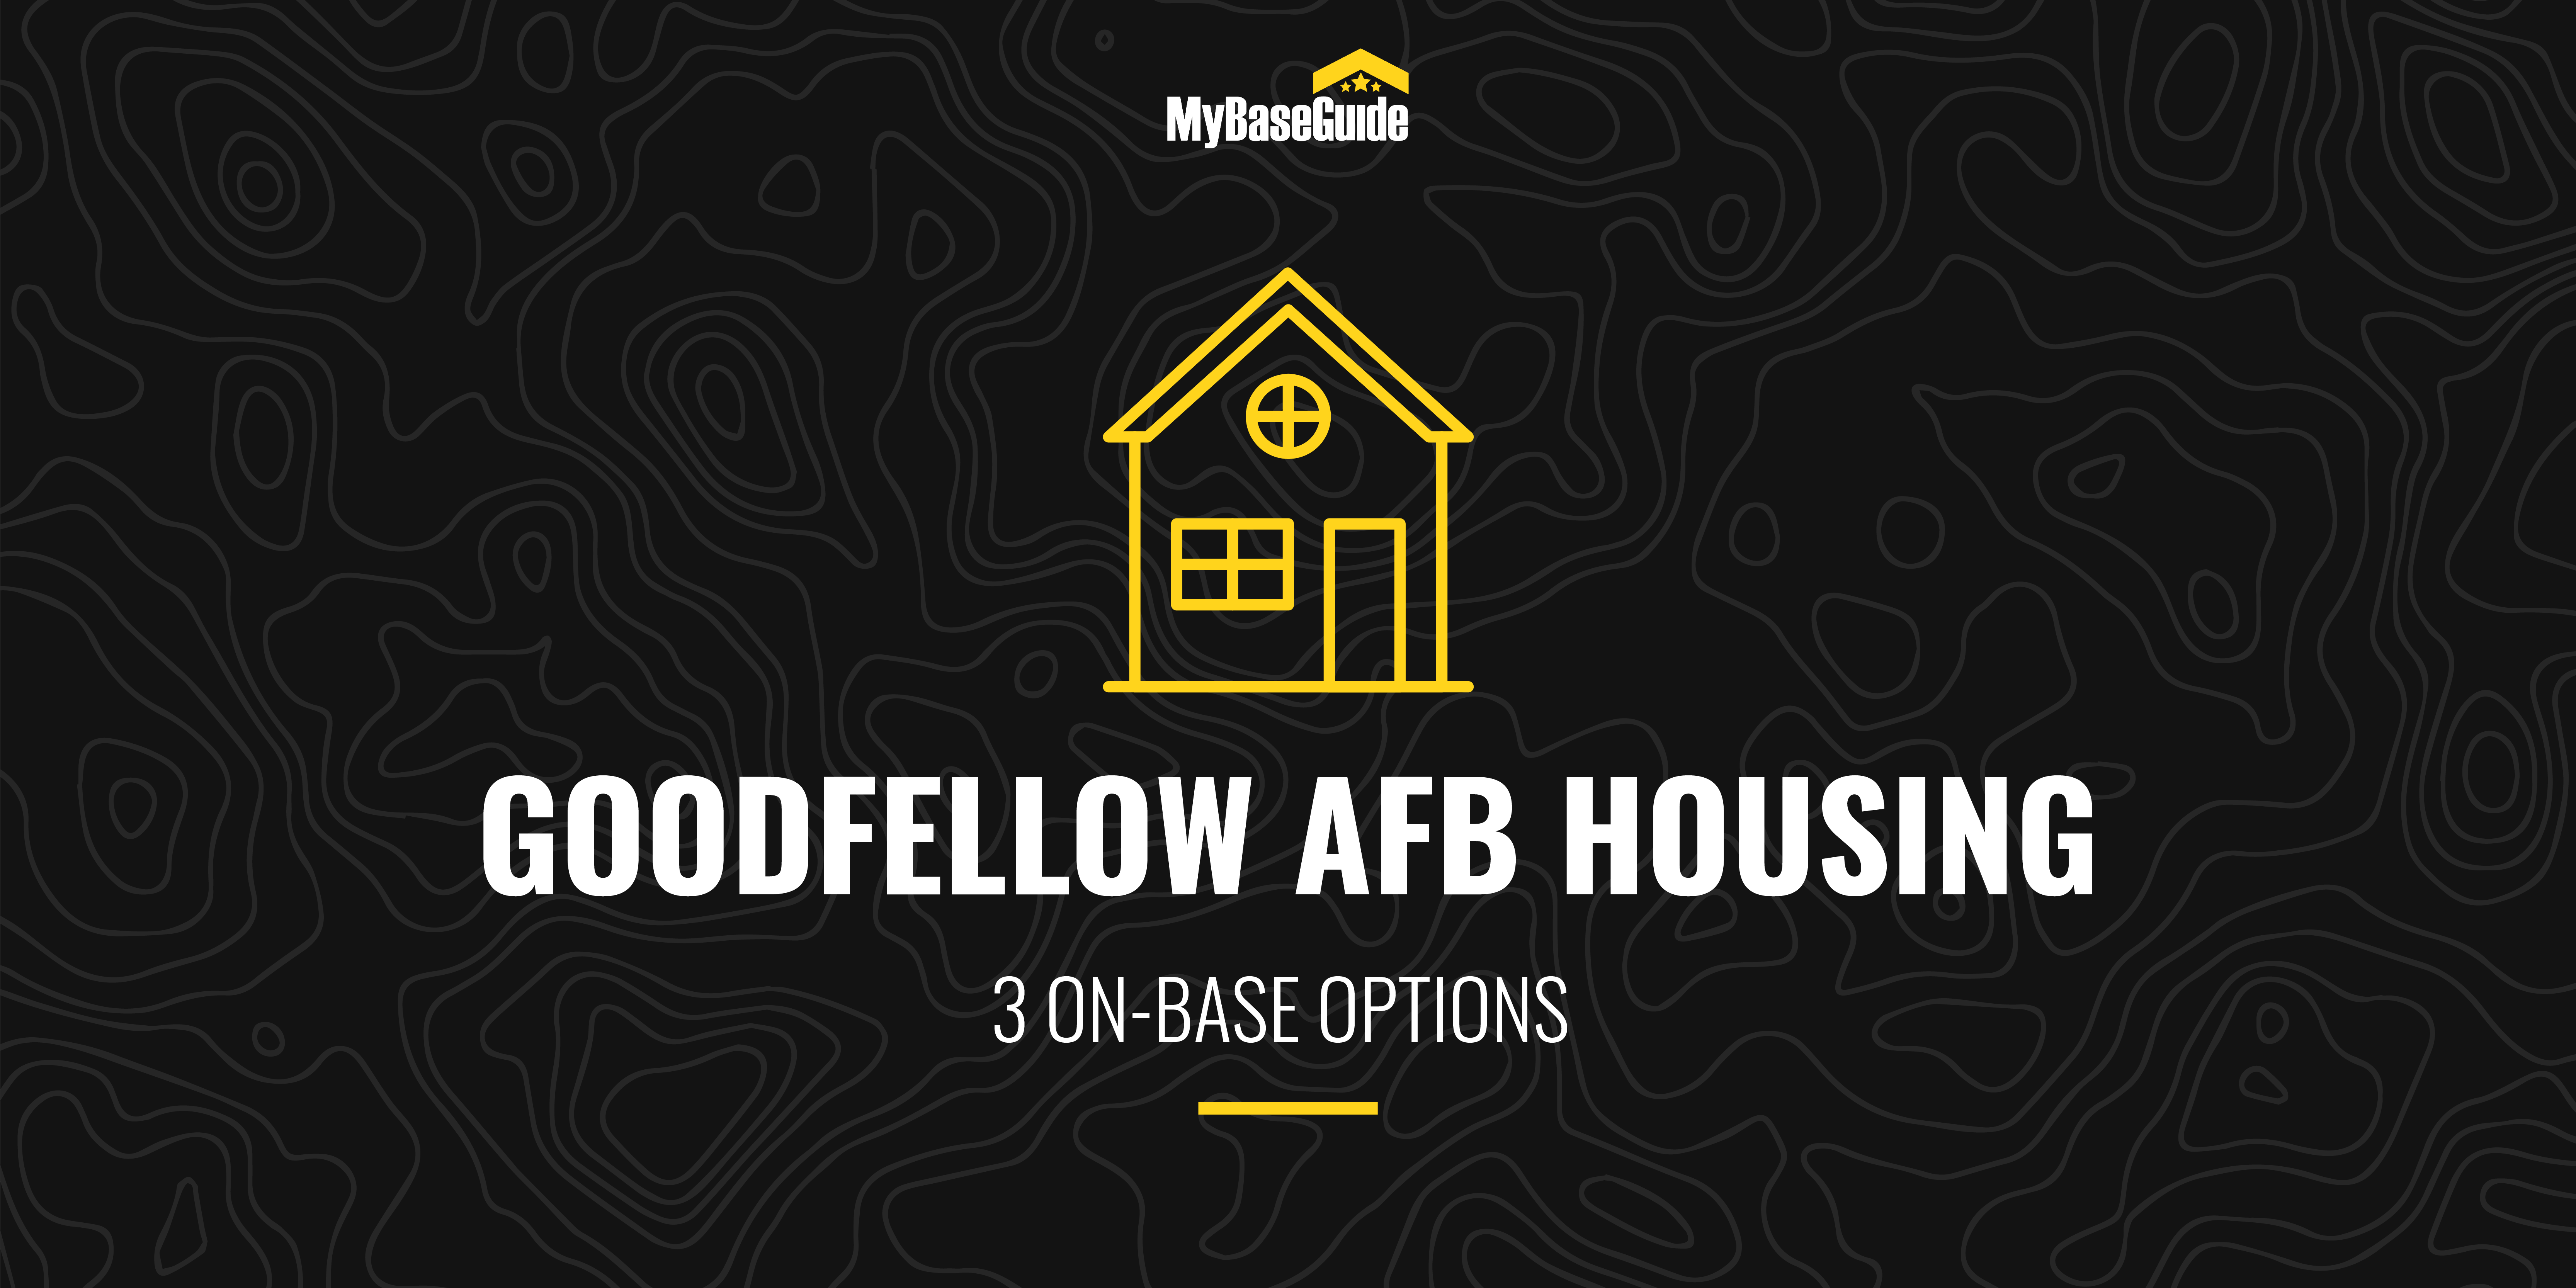 Goodfellow AFB Housing: 3 On-Base Options